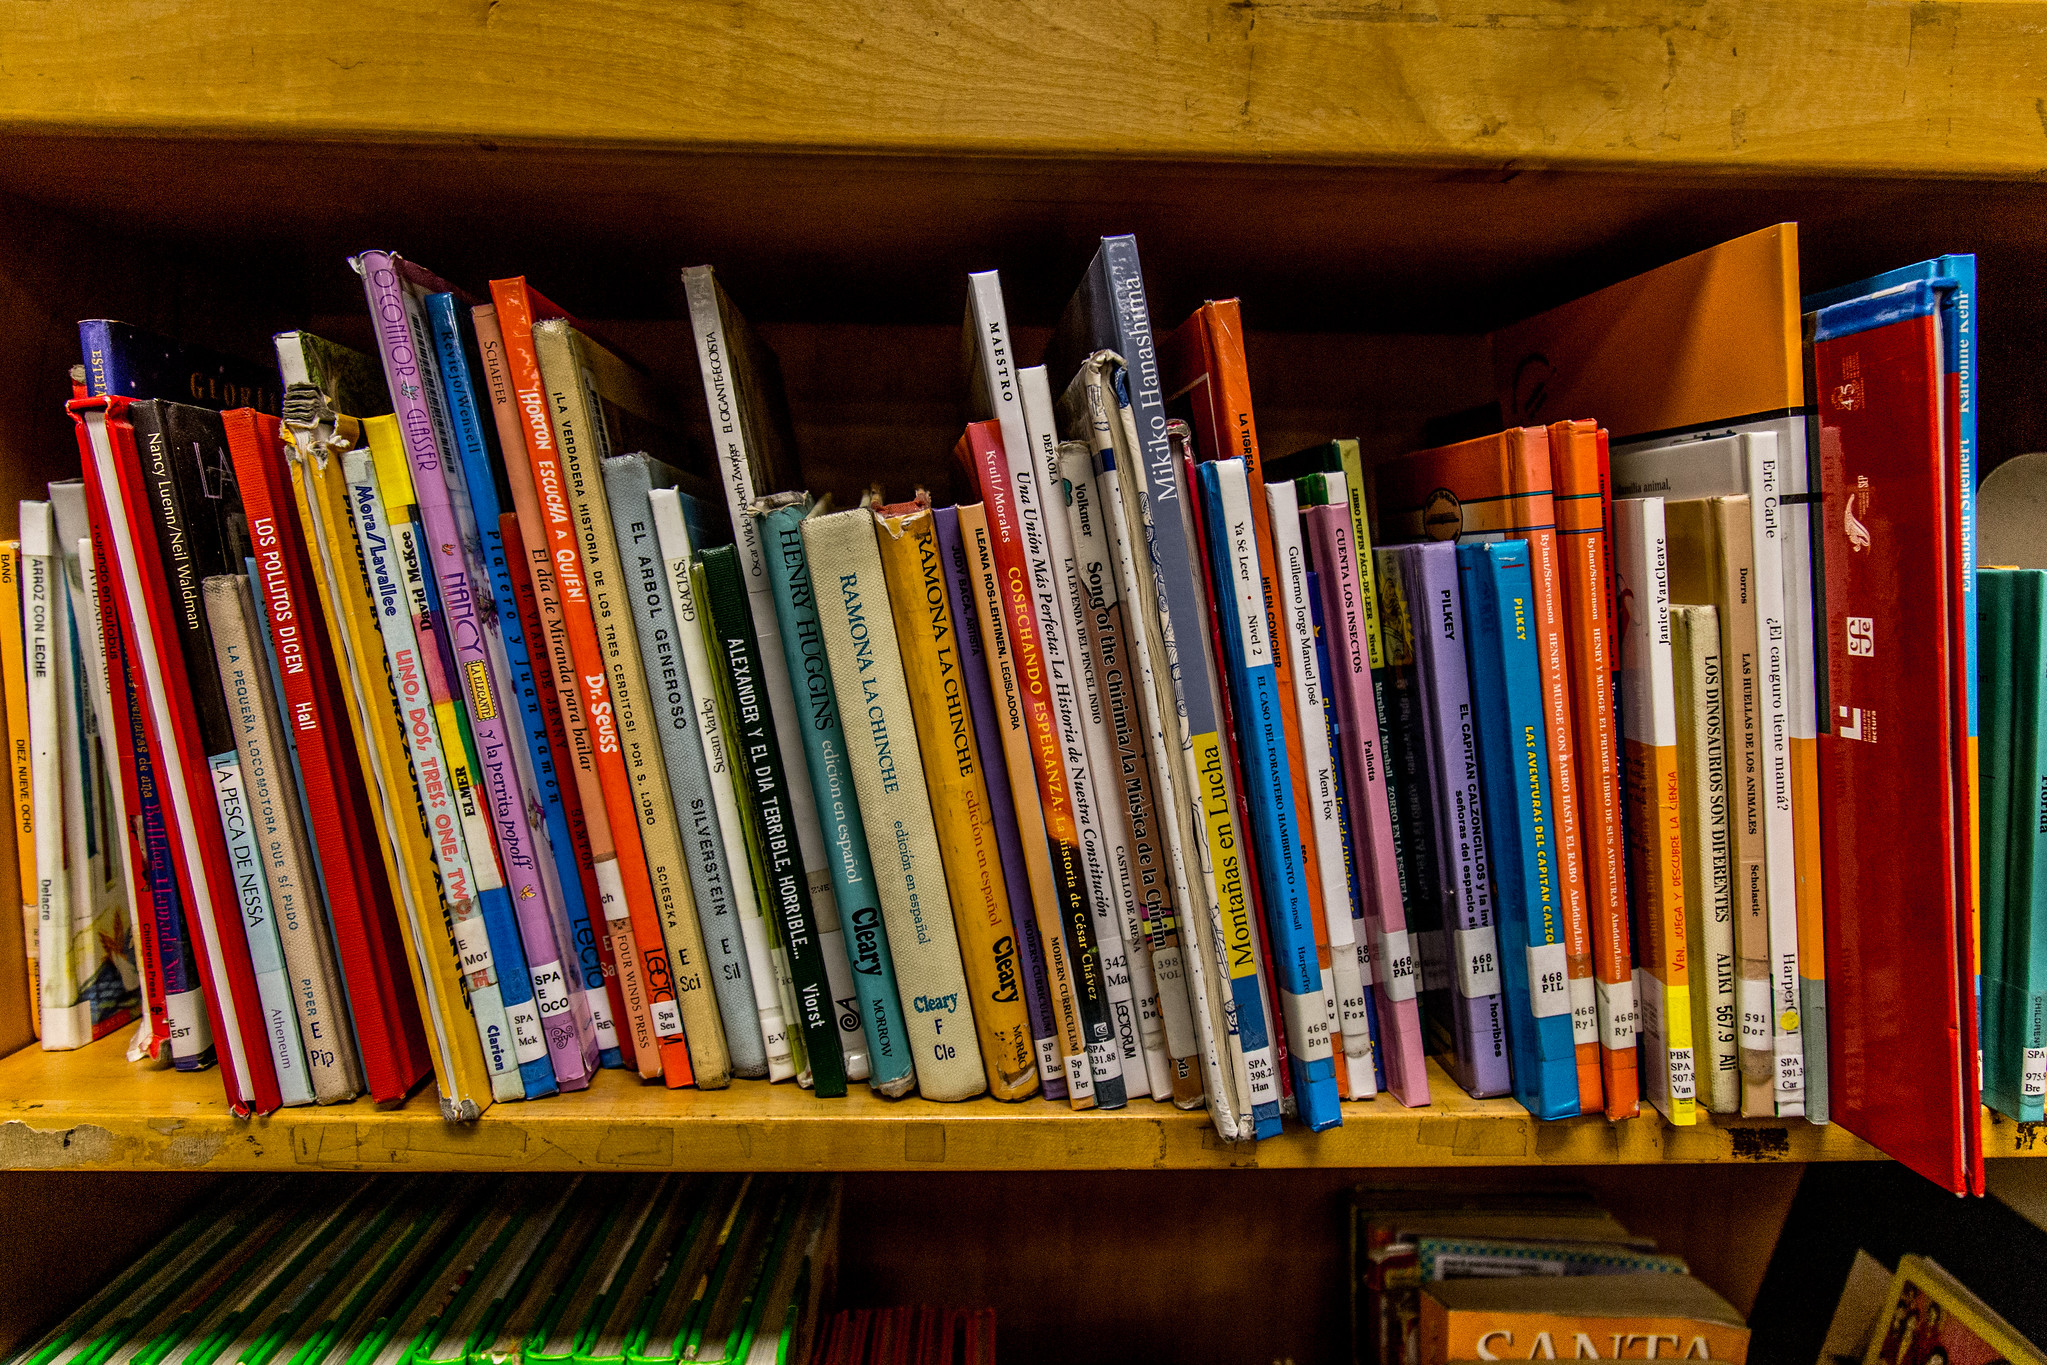 Children's books on a library bookshelf with spines showing